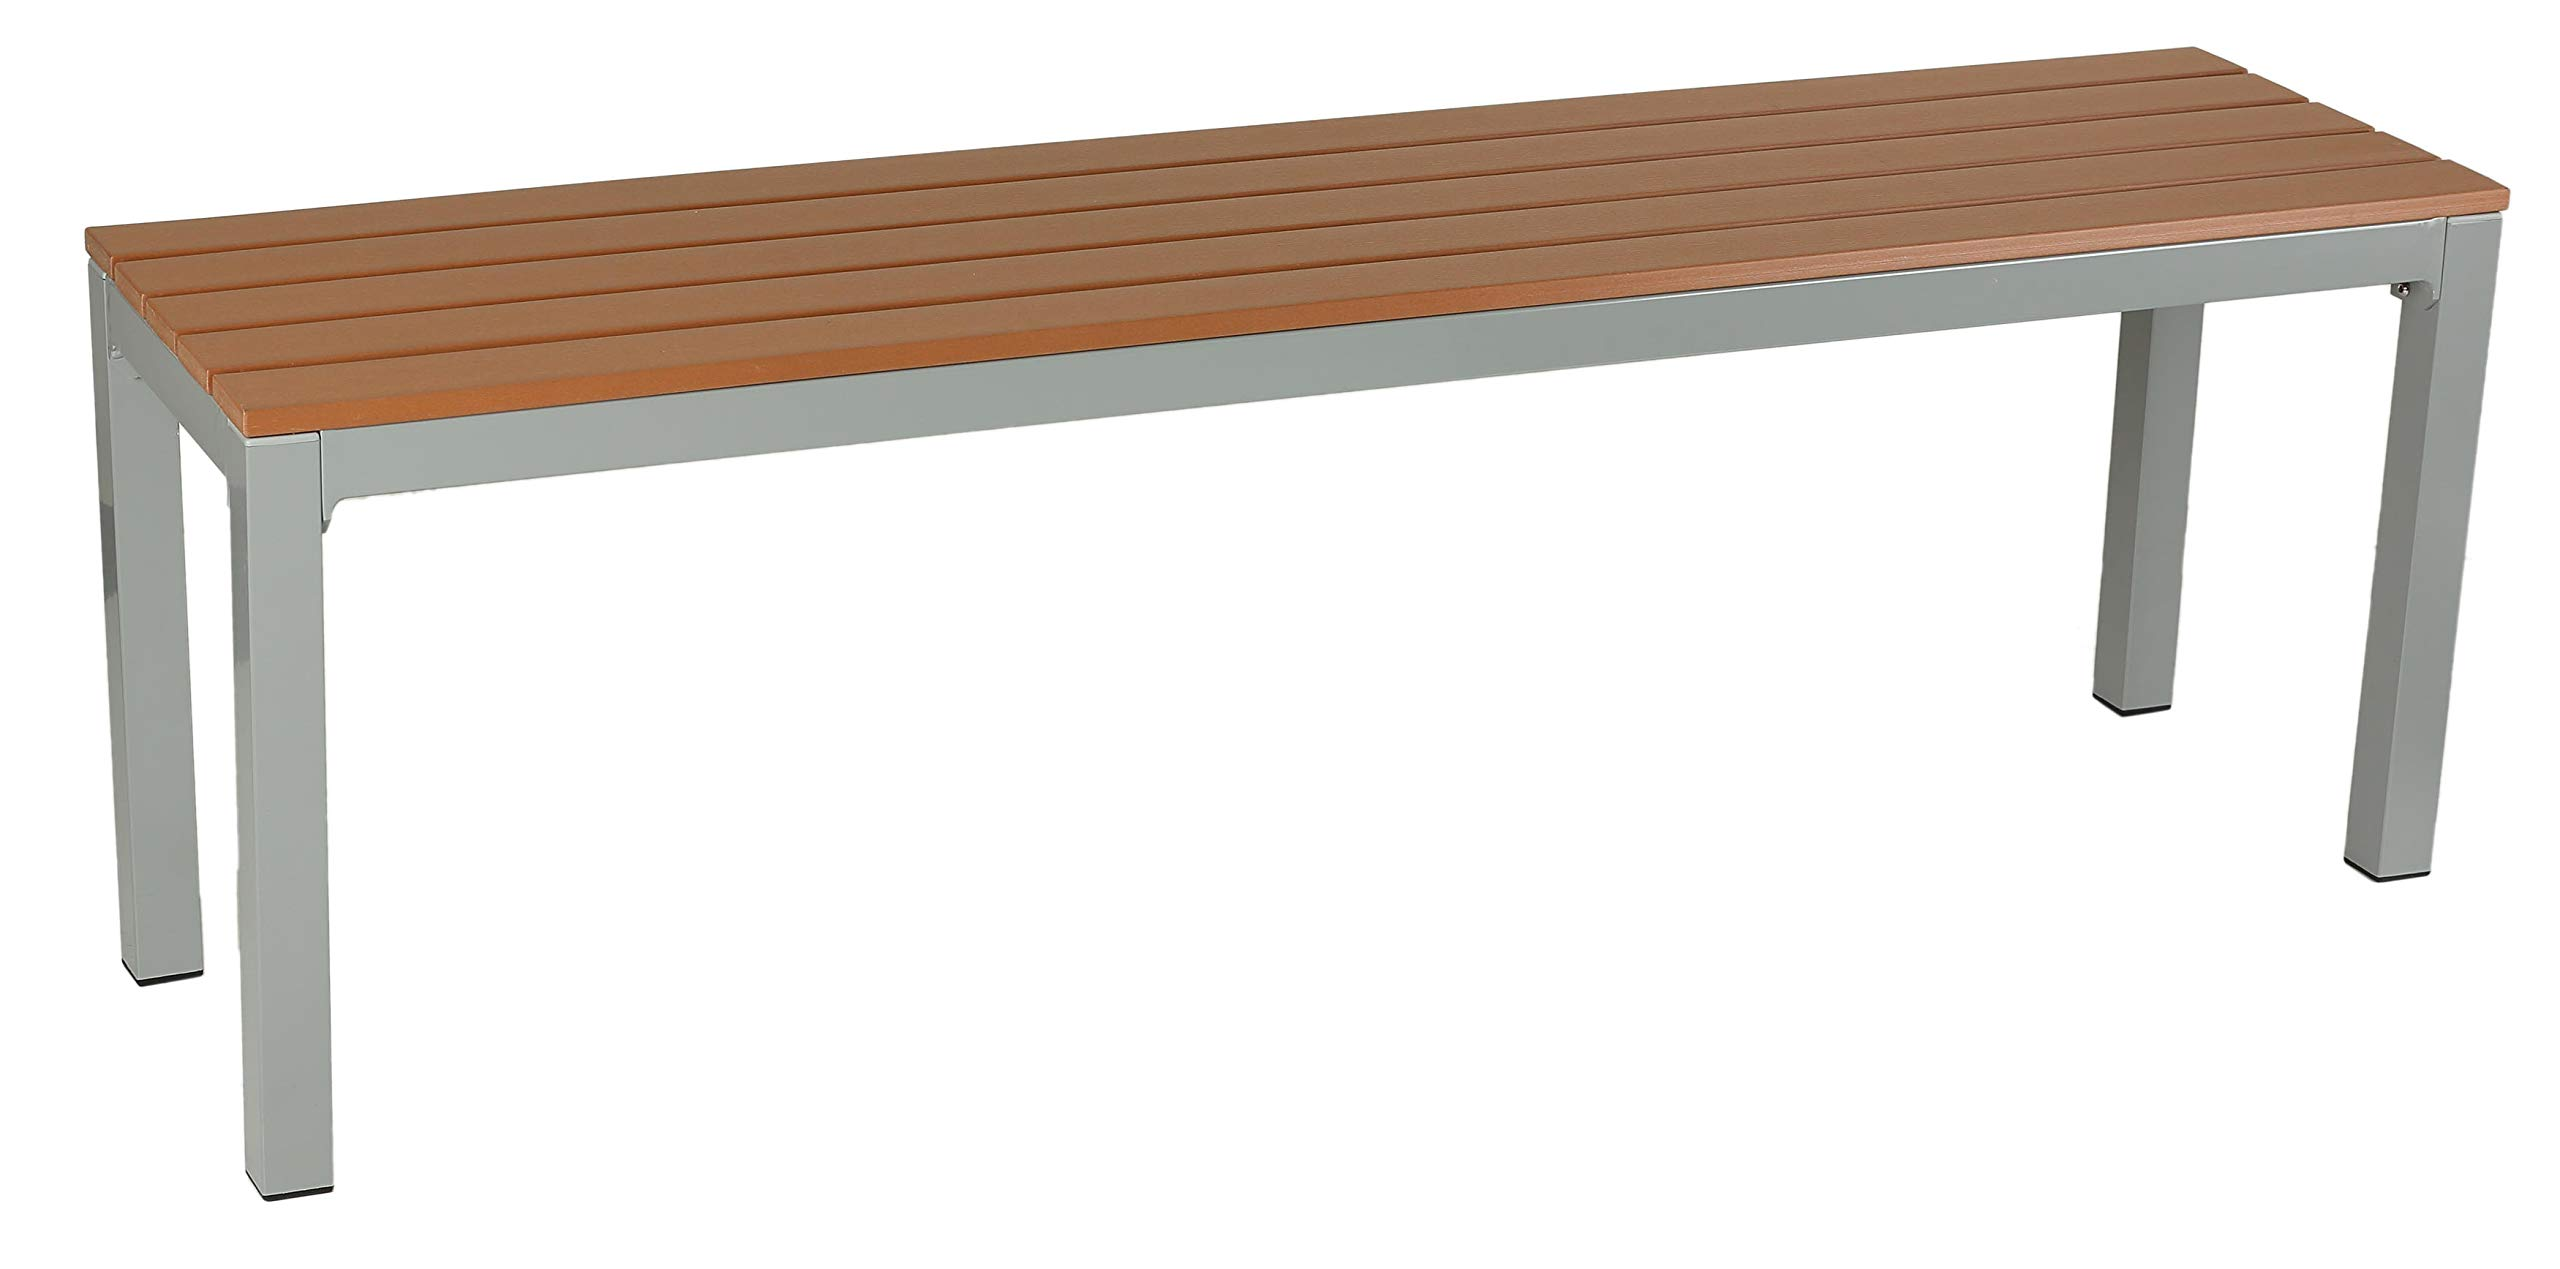 Cortesi Home Avery Large Aluminum Outdoor Bench in Poly Resin, Silver/Teak